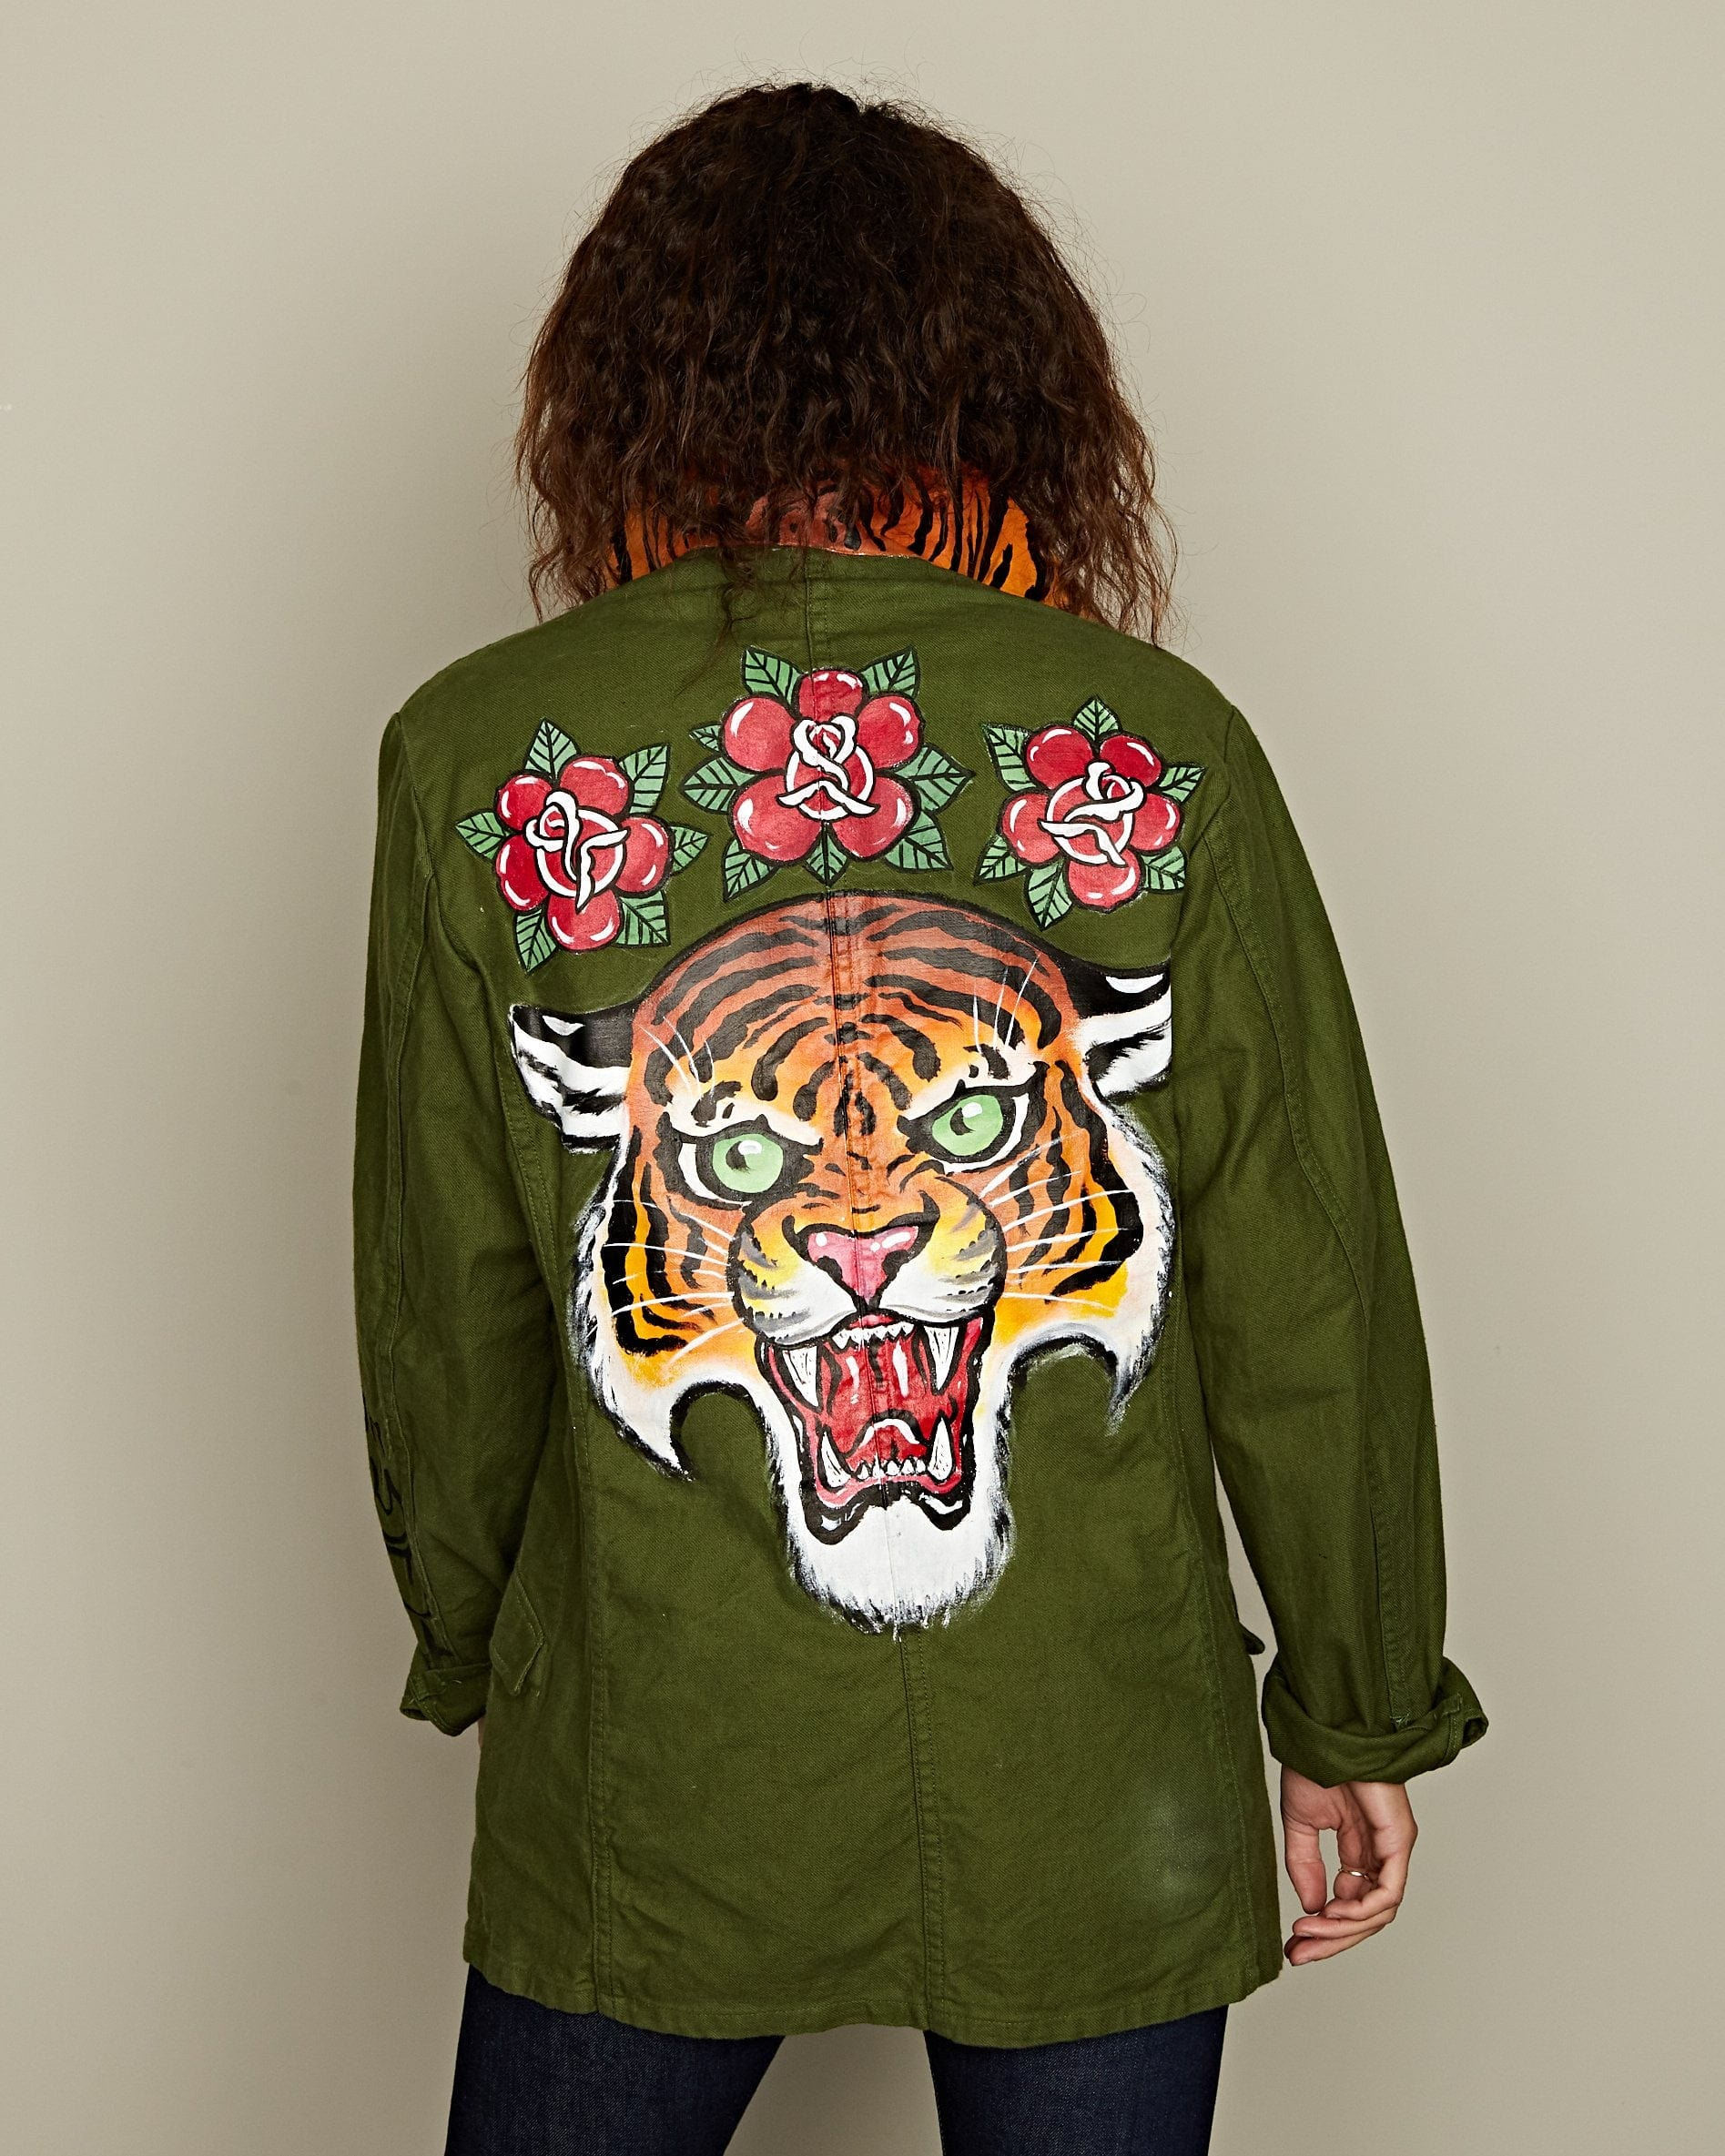 Swedish Army Jacket 'Tiger & Roses' by Tycho Veldhoen